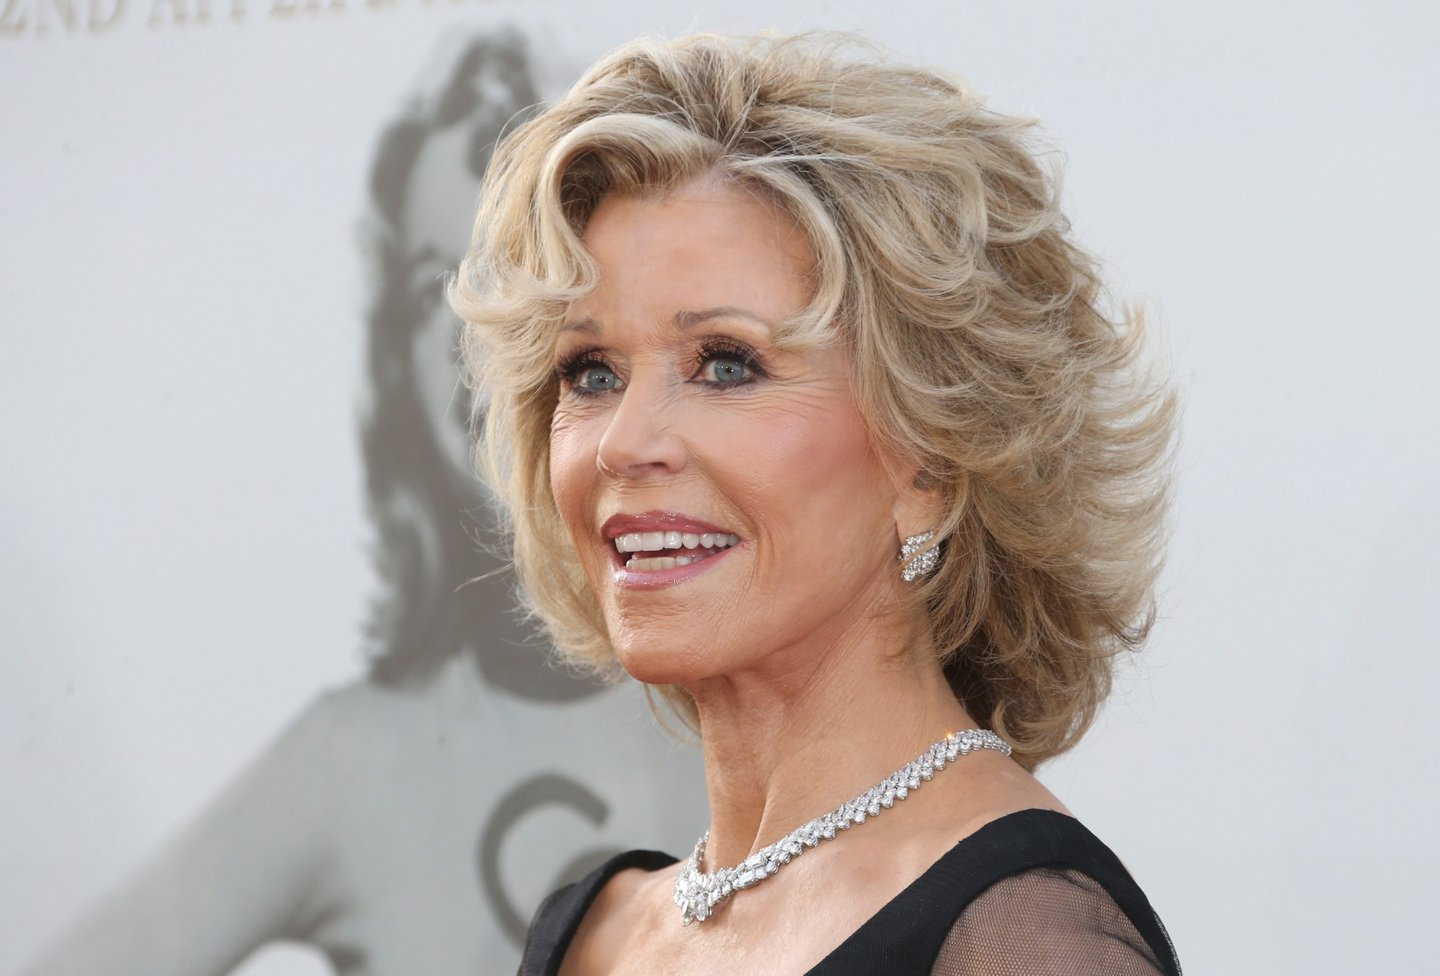 HOLLYWOOD, CA - JUNE 05: Honoree Jane Fonda attends the 2014 AFI Life Achievement Award: A Tribute to Jane Fonda at the Dolby Theatre on June 5, 2014 in Hollywood, California. Tribute show airing Saturday, June 14, 2014 at 9pm ET/PT on TNT. (Photo by Frederick M. Brown/Getty Images for AFI)